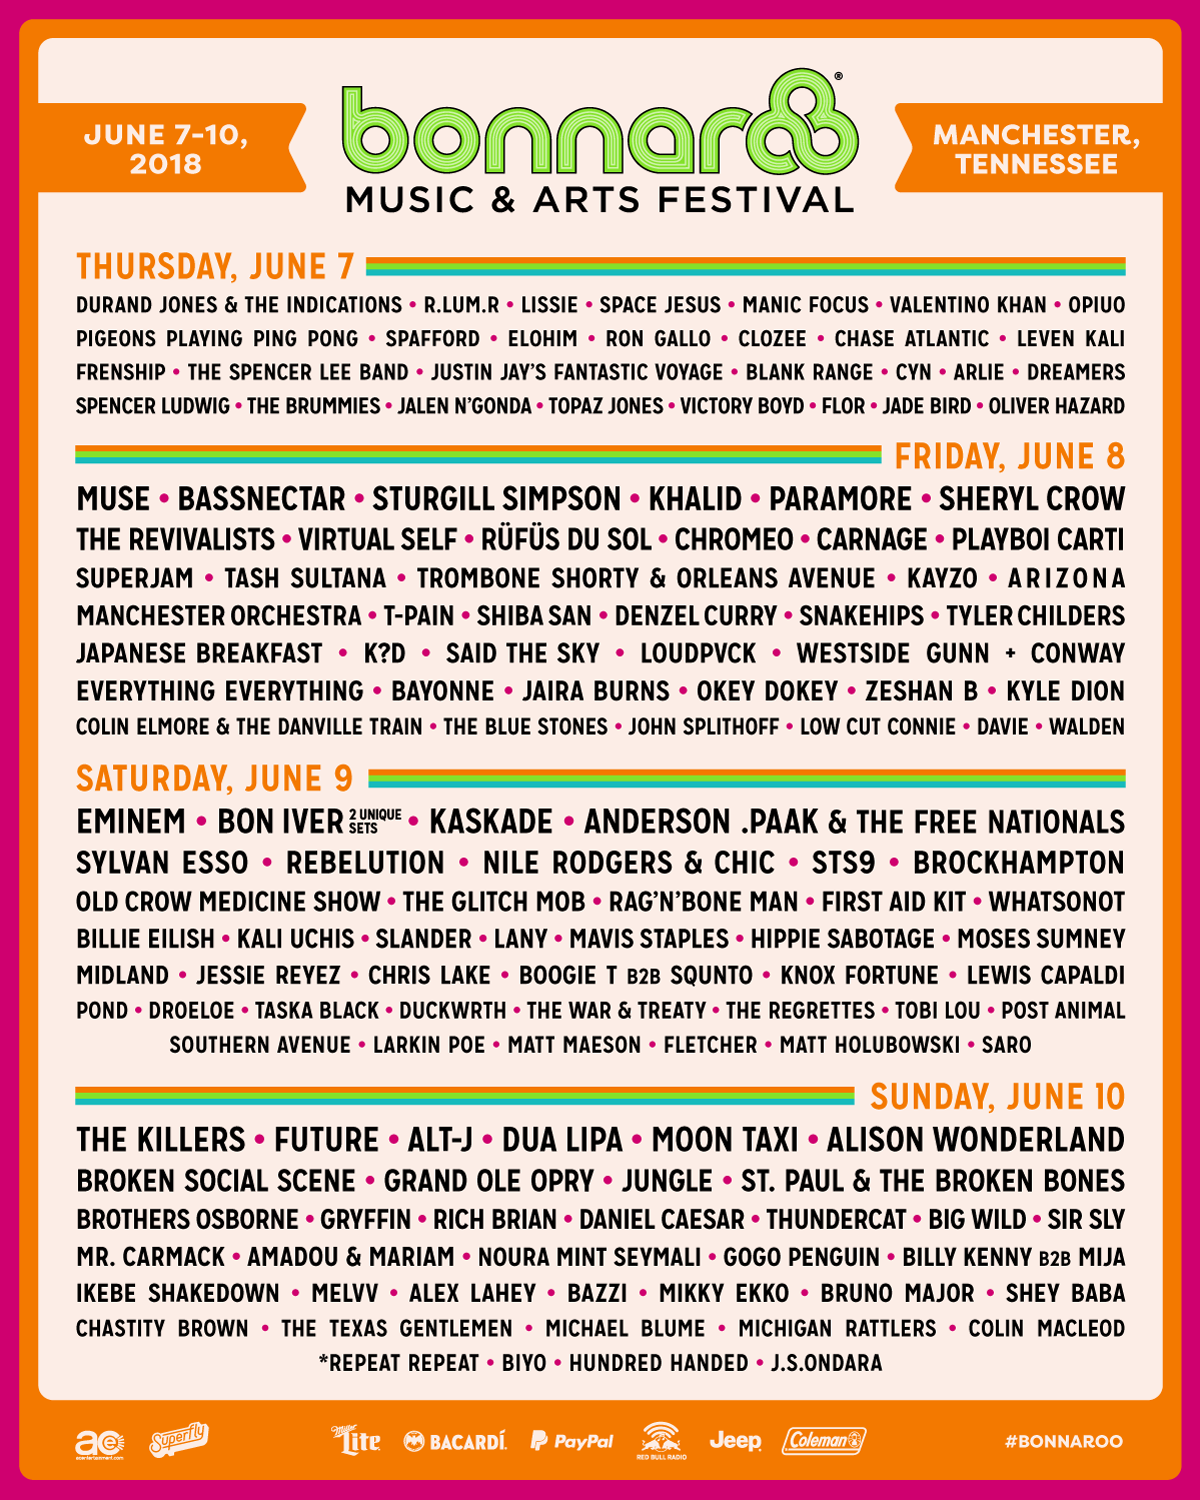 2020 Bonnaroo Music And Arts Festival Lineup.2018 Lineup Poster Bonnaroo Music Arts Festival 2018